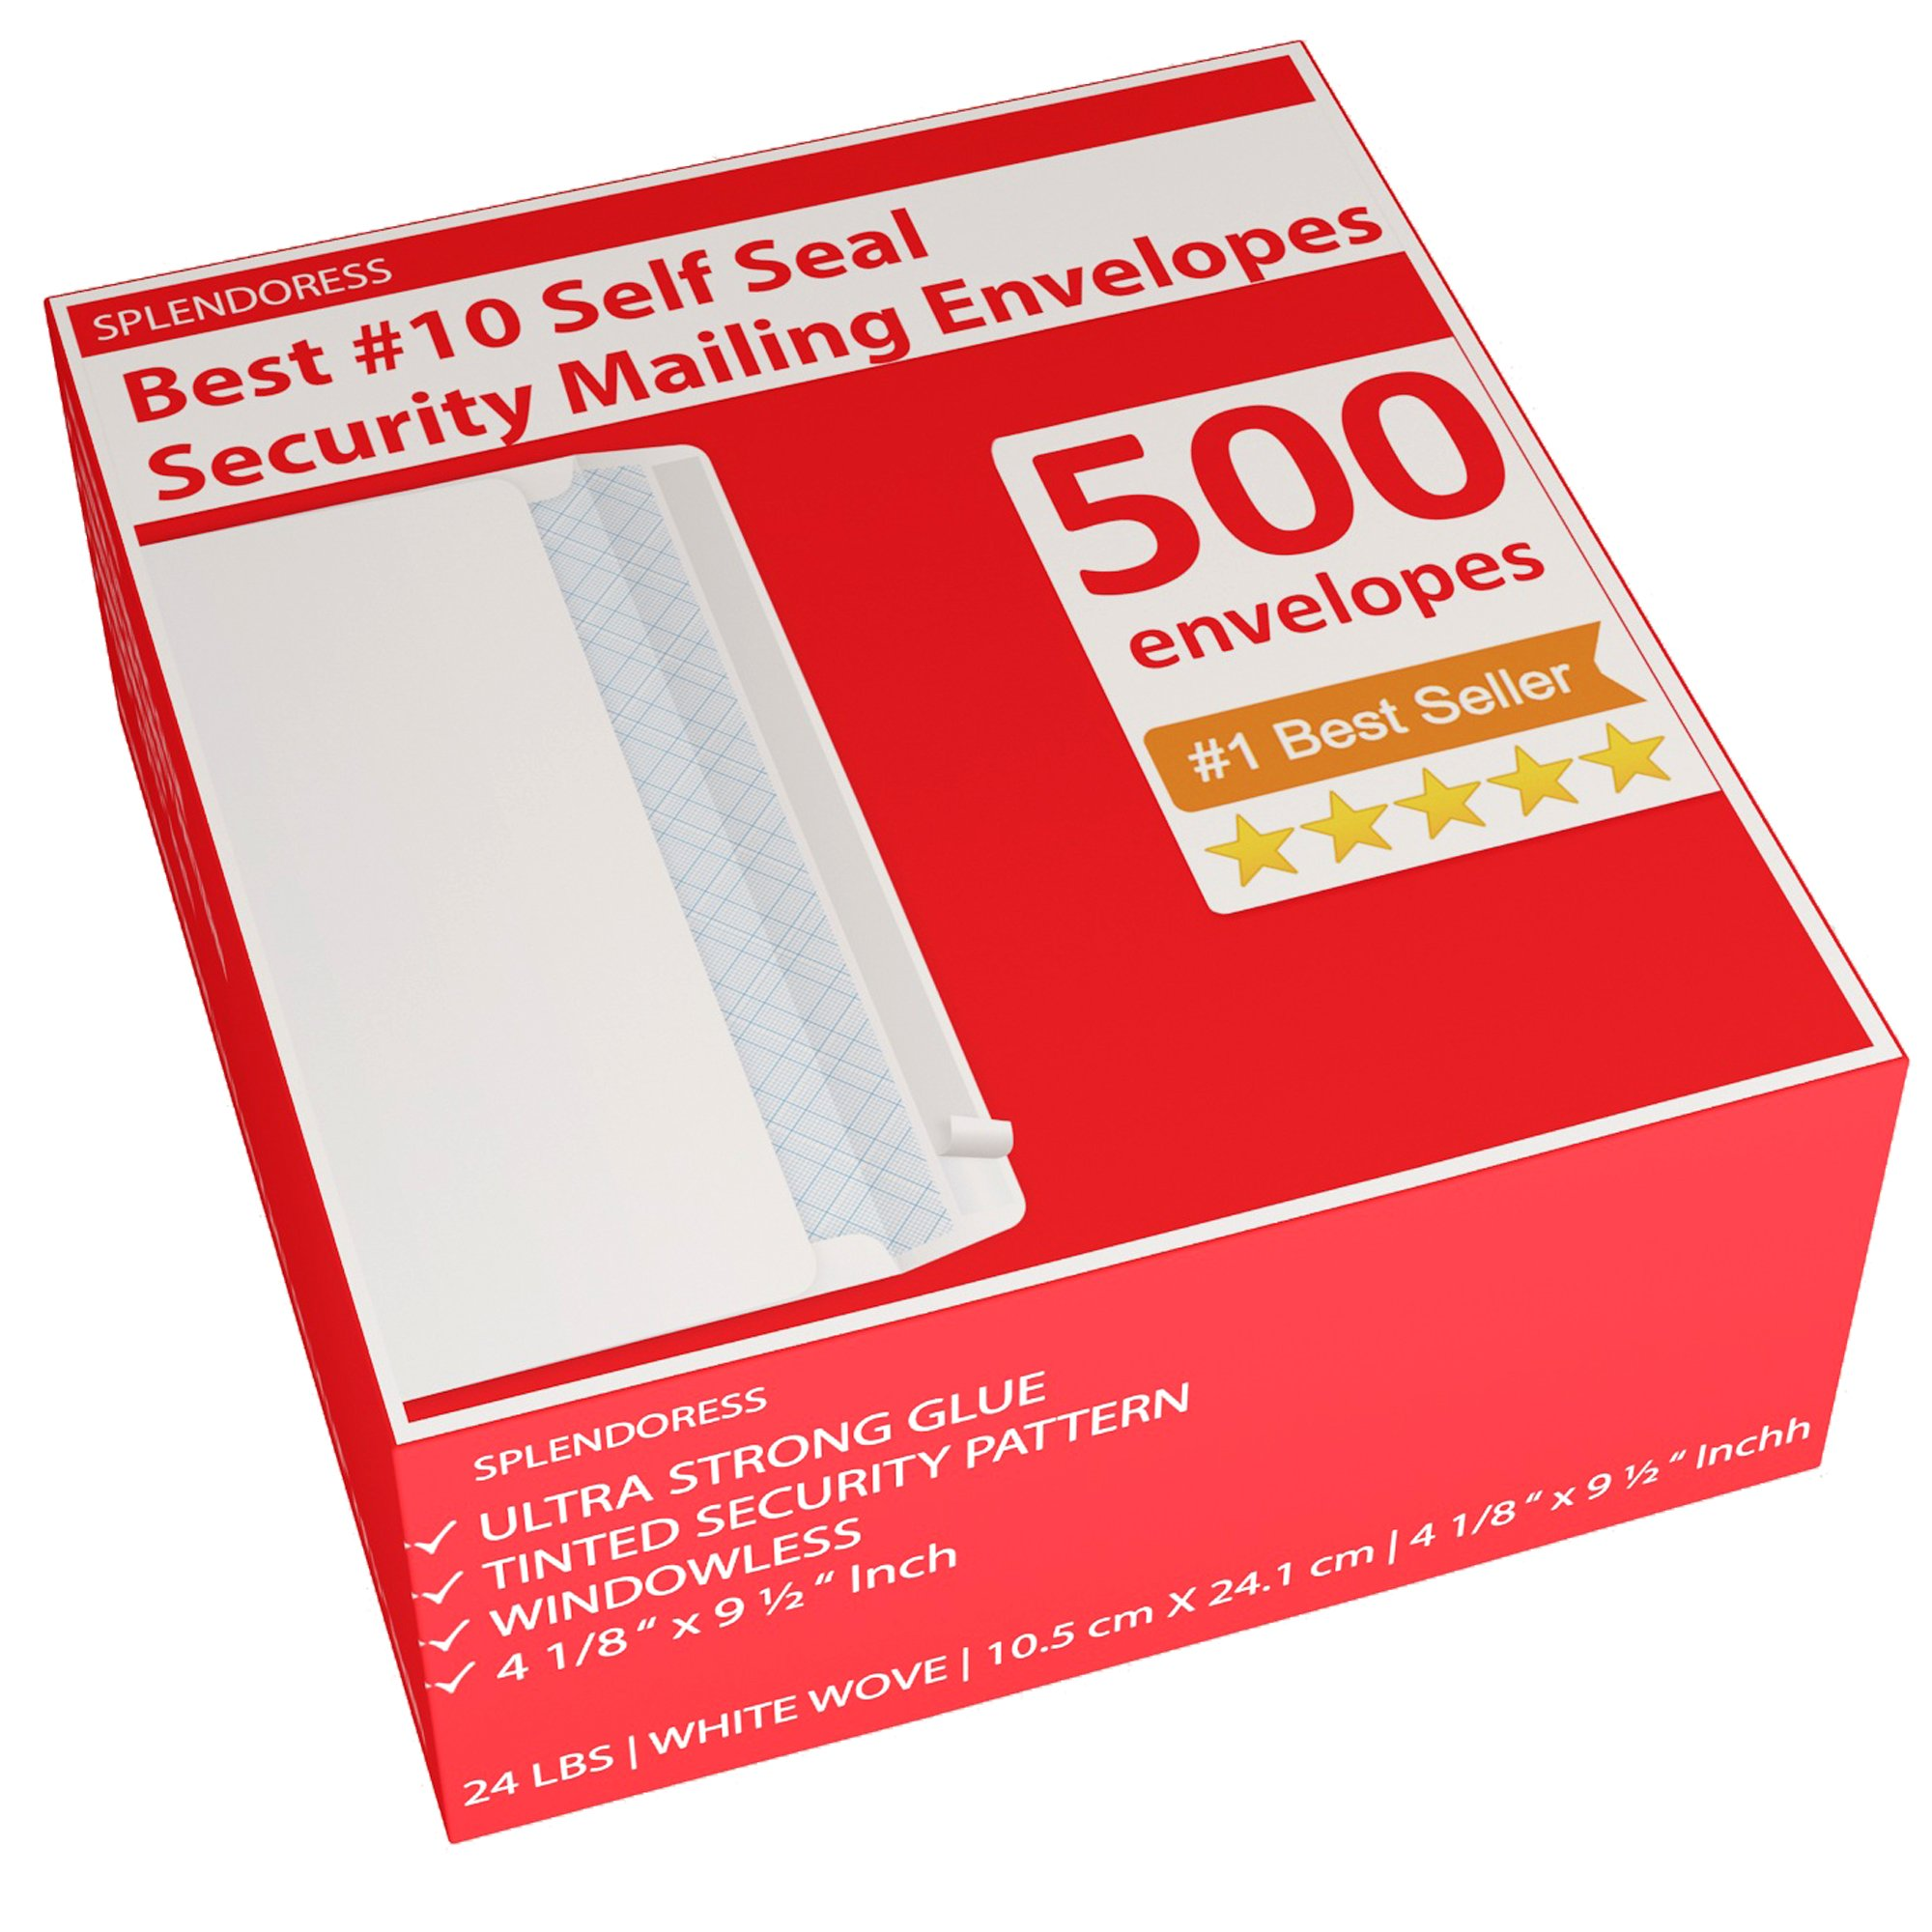 #10 White Envelopes Letter Legal Size - No. 10 Envelopes 500 Count Bulk - Security Mailing Strip & Self Stick Seal - Business Tinted Windowless Envelopes 4 1/8 in. x 9 1/2 in - Secure Invoice Mailing